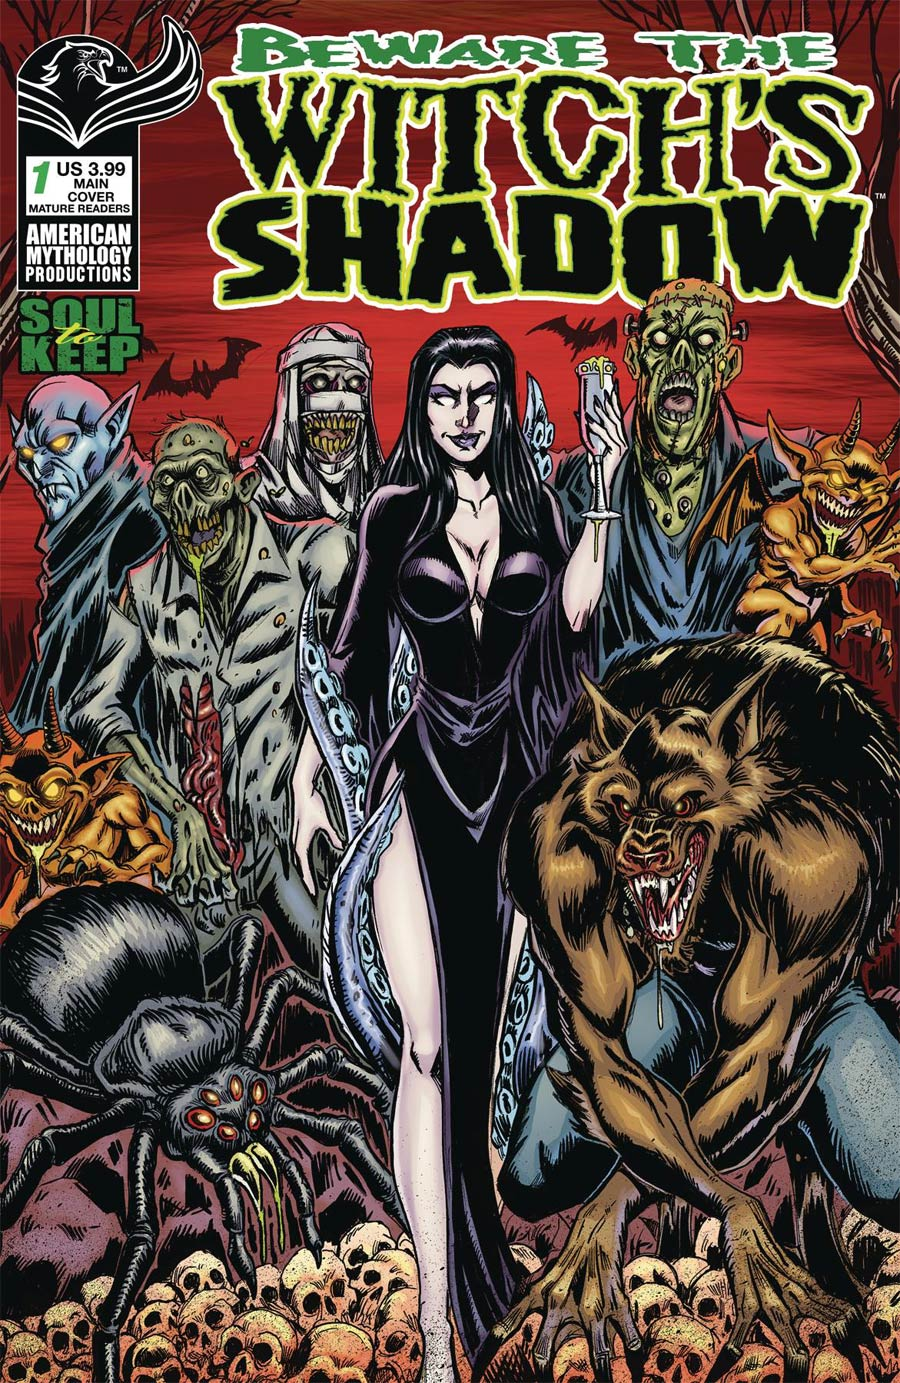 Beware The Witchs Shadow Soul To Keep #1 Cover A Regular Puis Calzada Cover